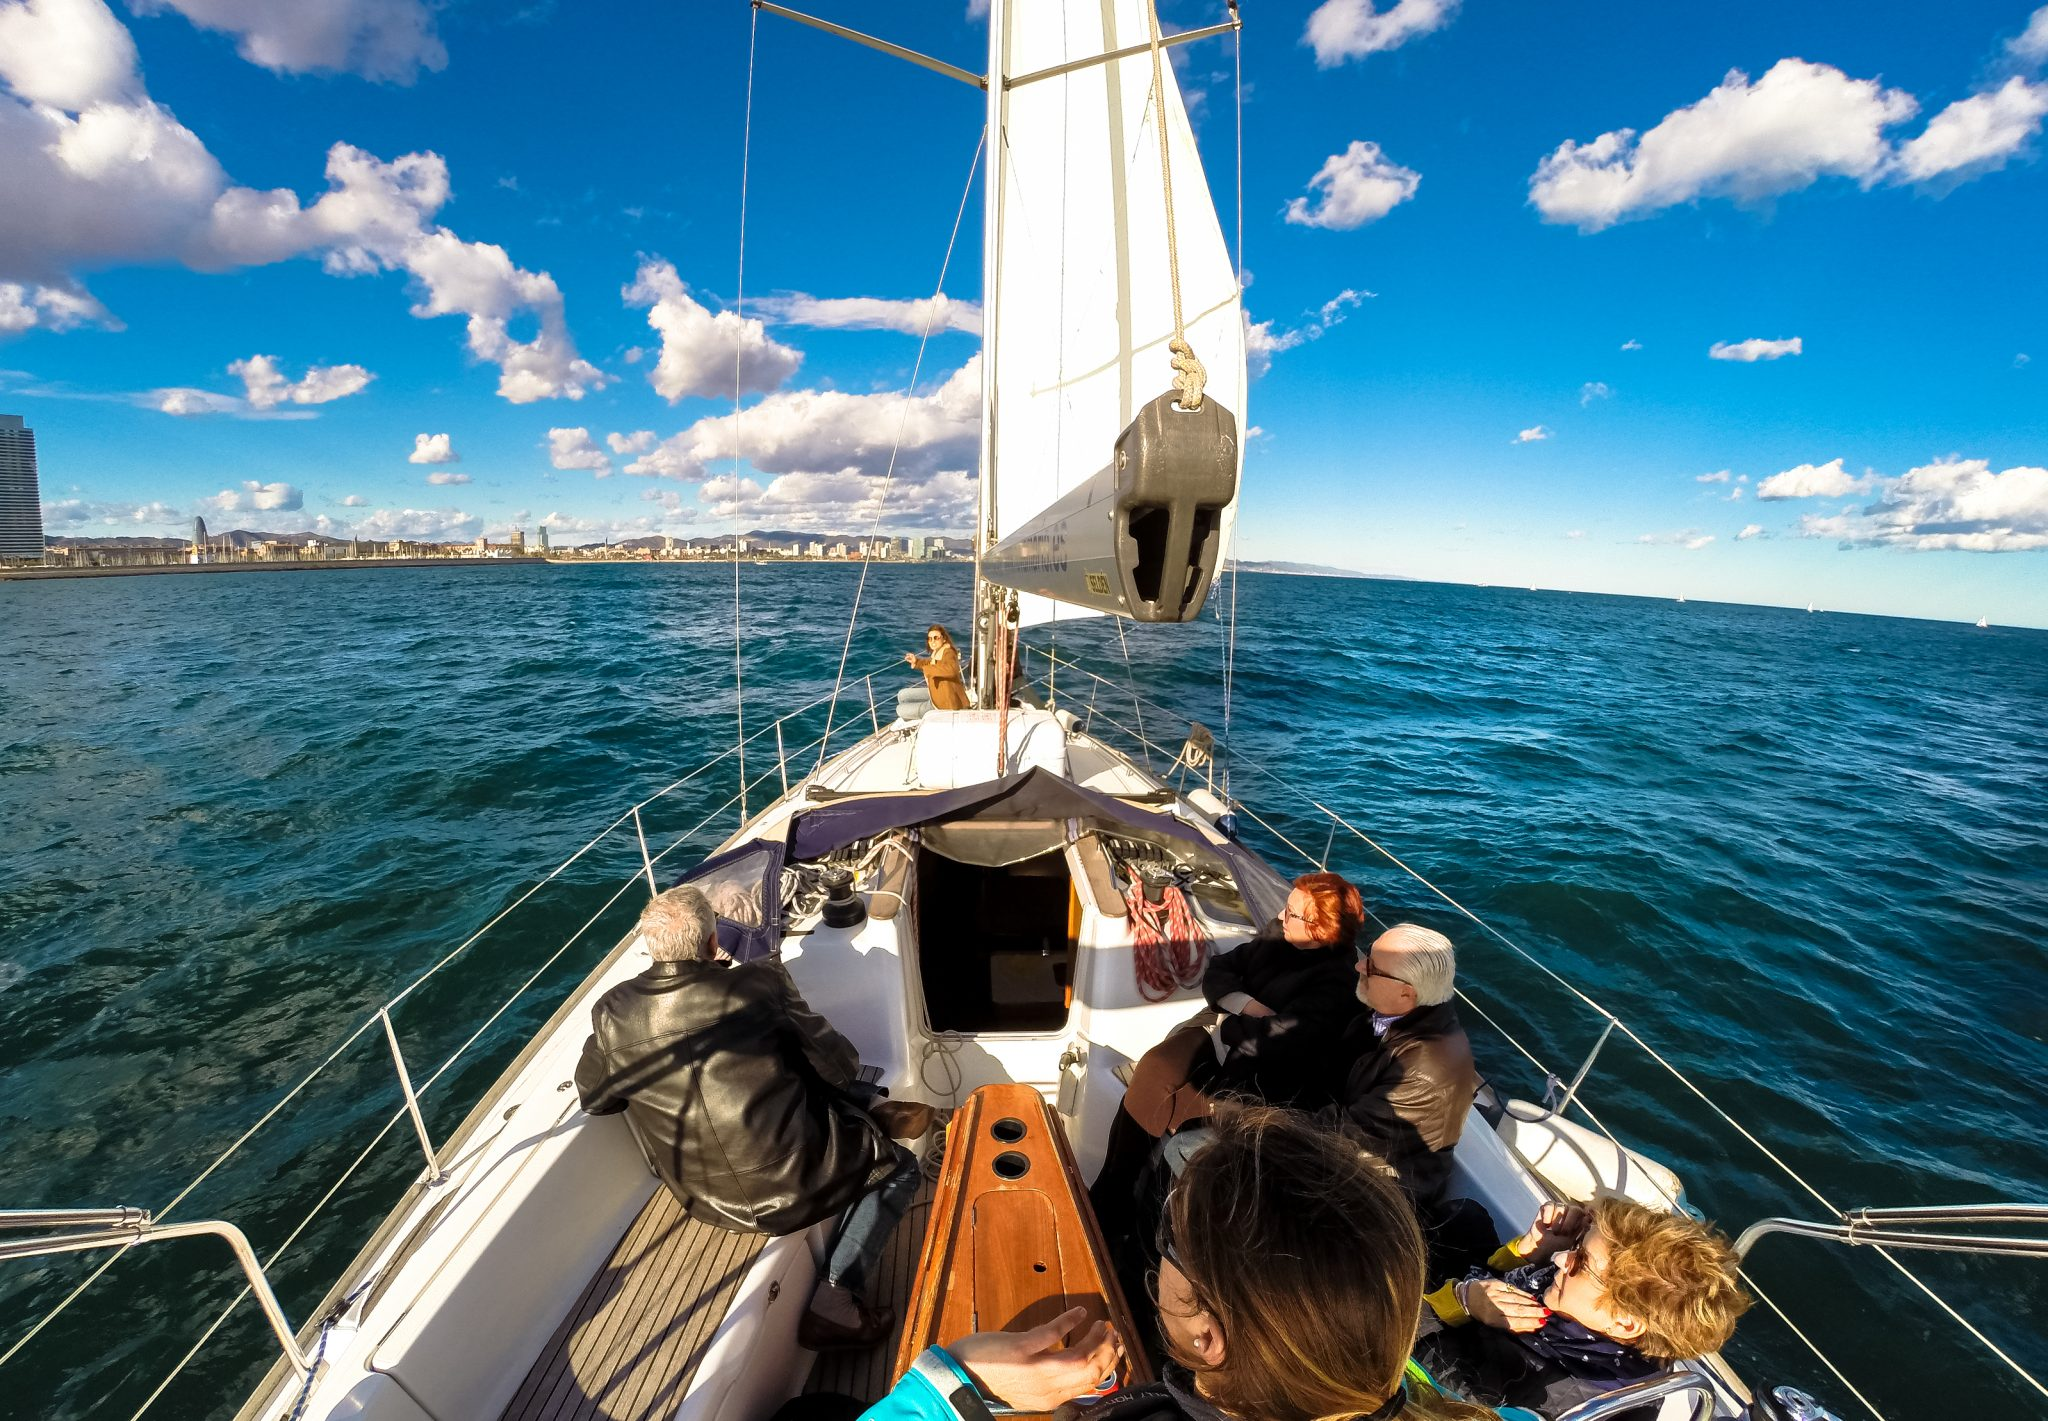 drive & sailing trip in barcelona - discover, compare & book the